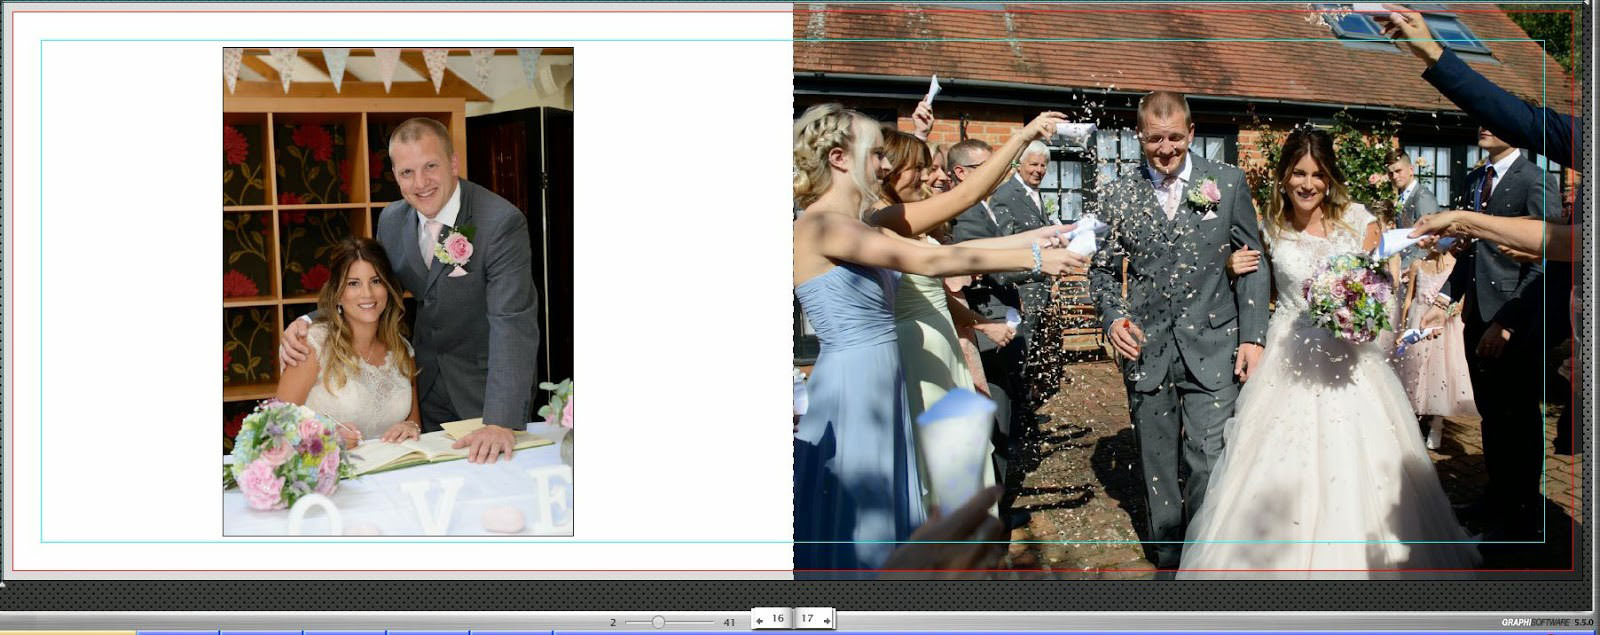 ali-gaudion-chichester-wedding-photographer-graphistudio-wedding-album-design-008